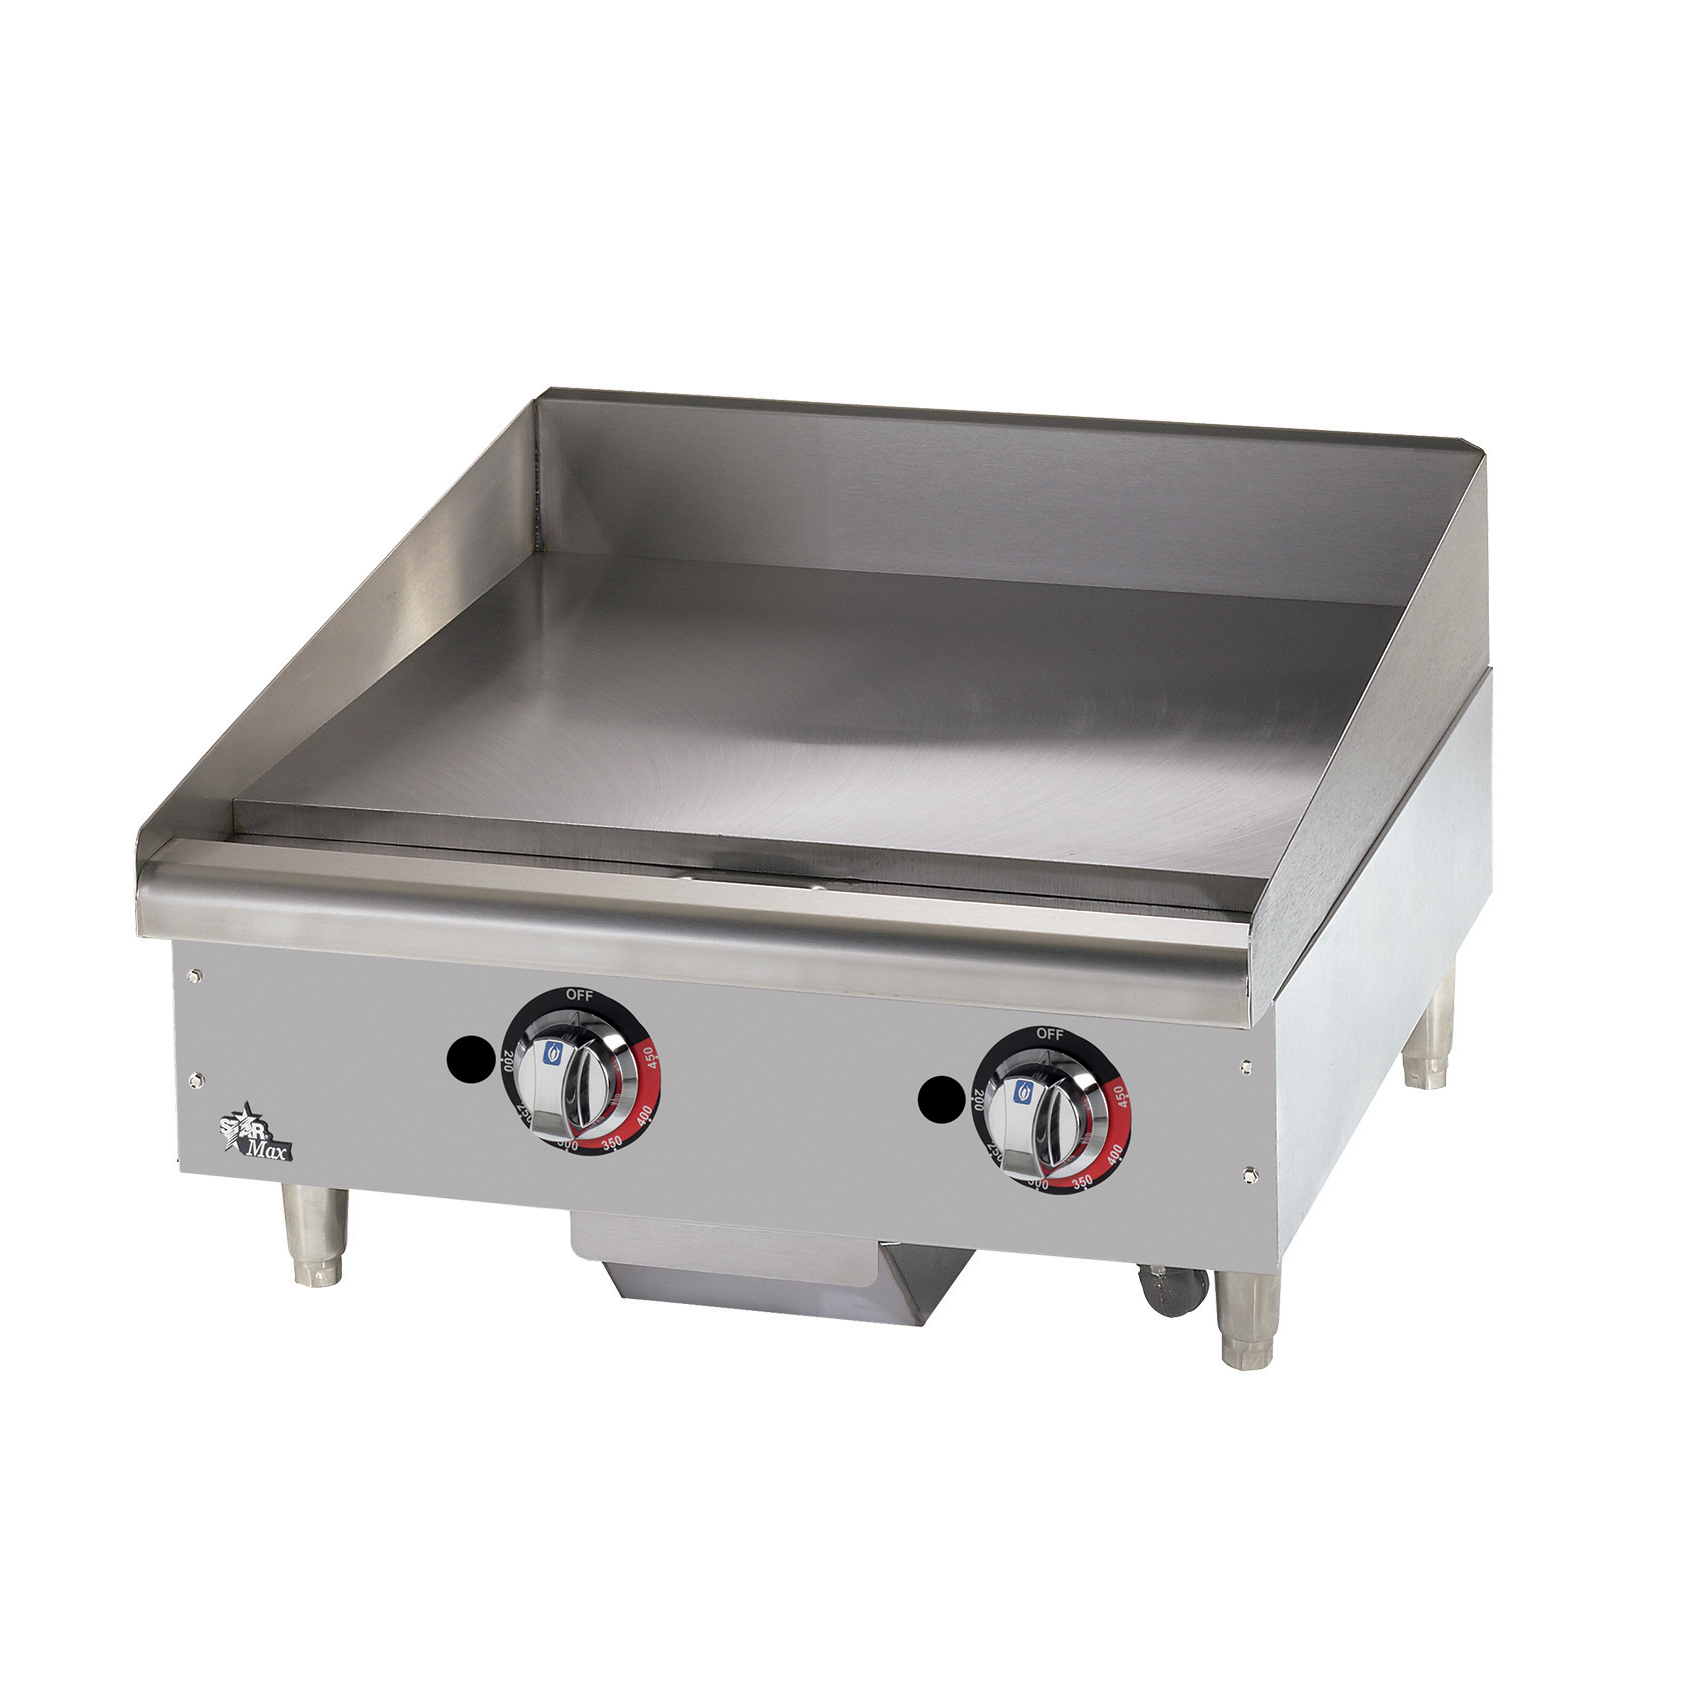 Star 624TF griddle, gas, countertop